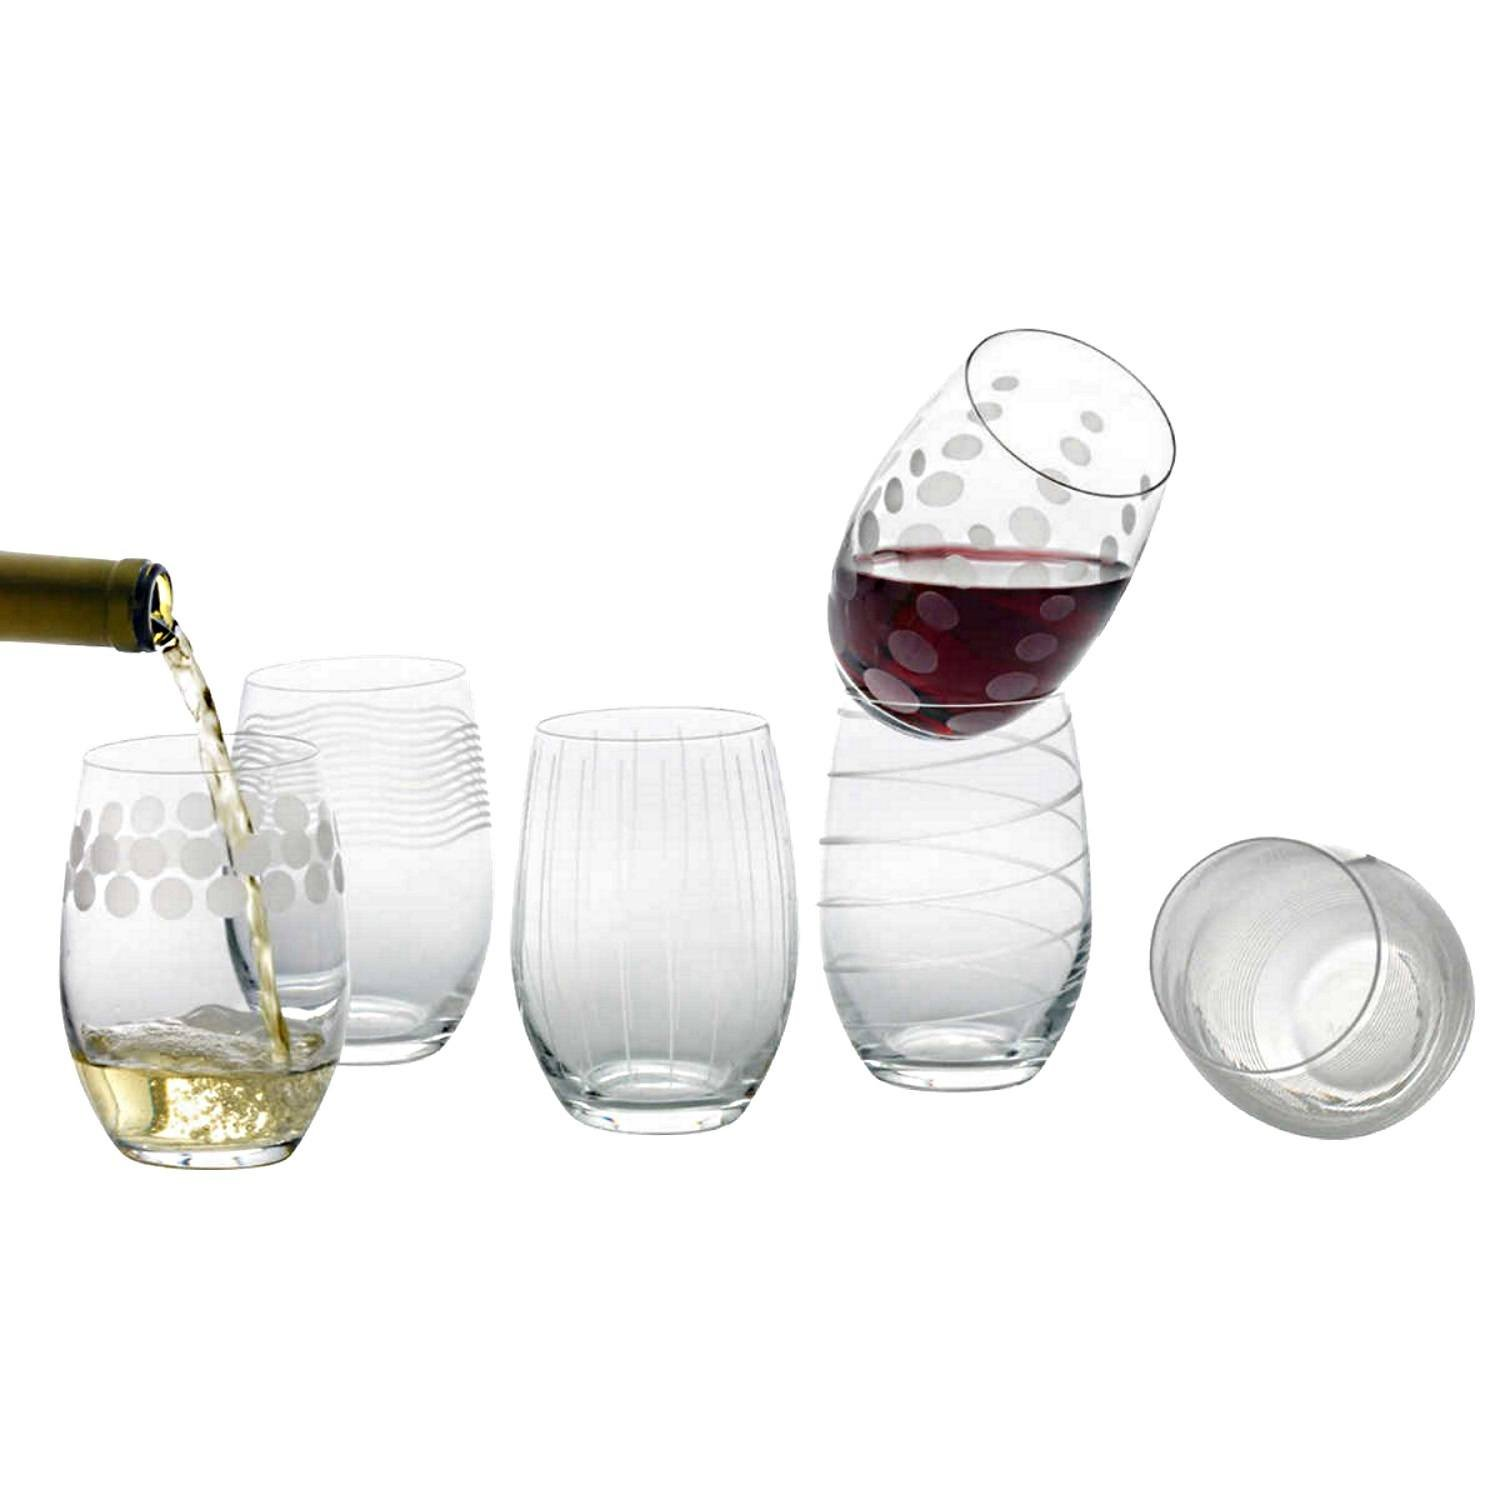 Mikasa Cheers Stemless Etched Wine Glasses, Fine European Lead-Free Crystal, 17-Ounces for Red or White Wine - Set of 6 by Mikasa (Image #2)